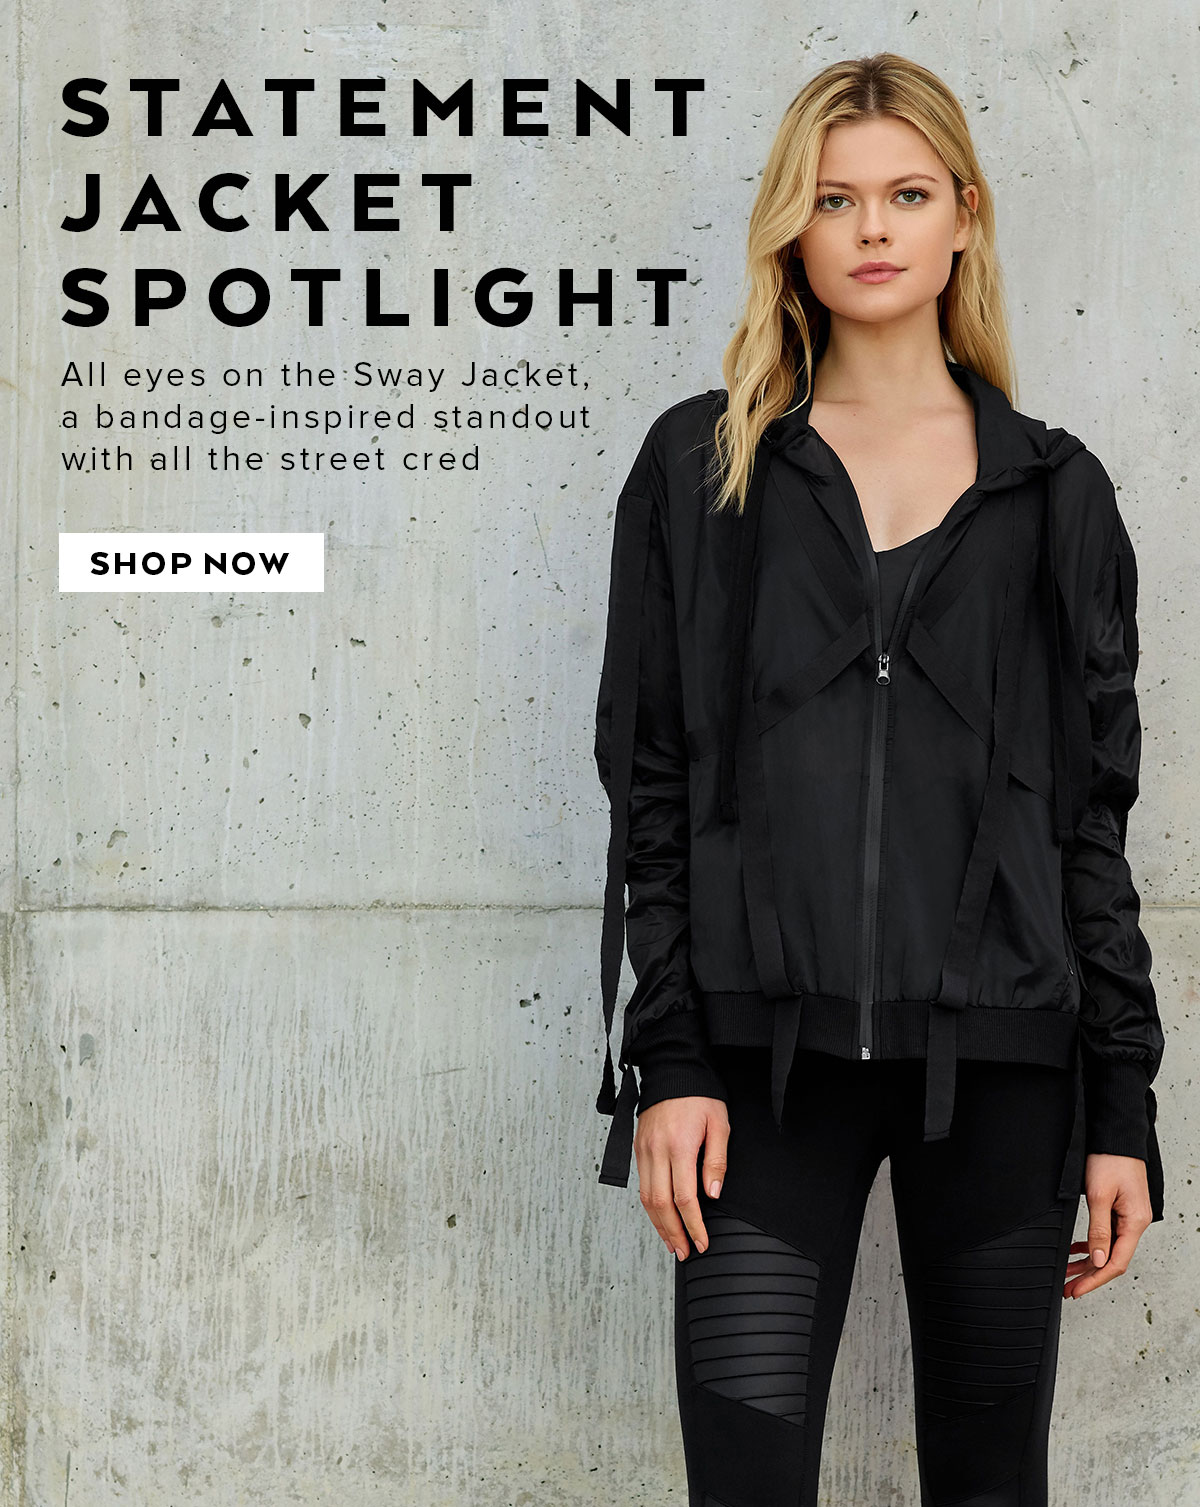 Statement Jacket Spotlight - SHOP NOW